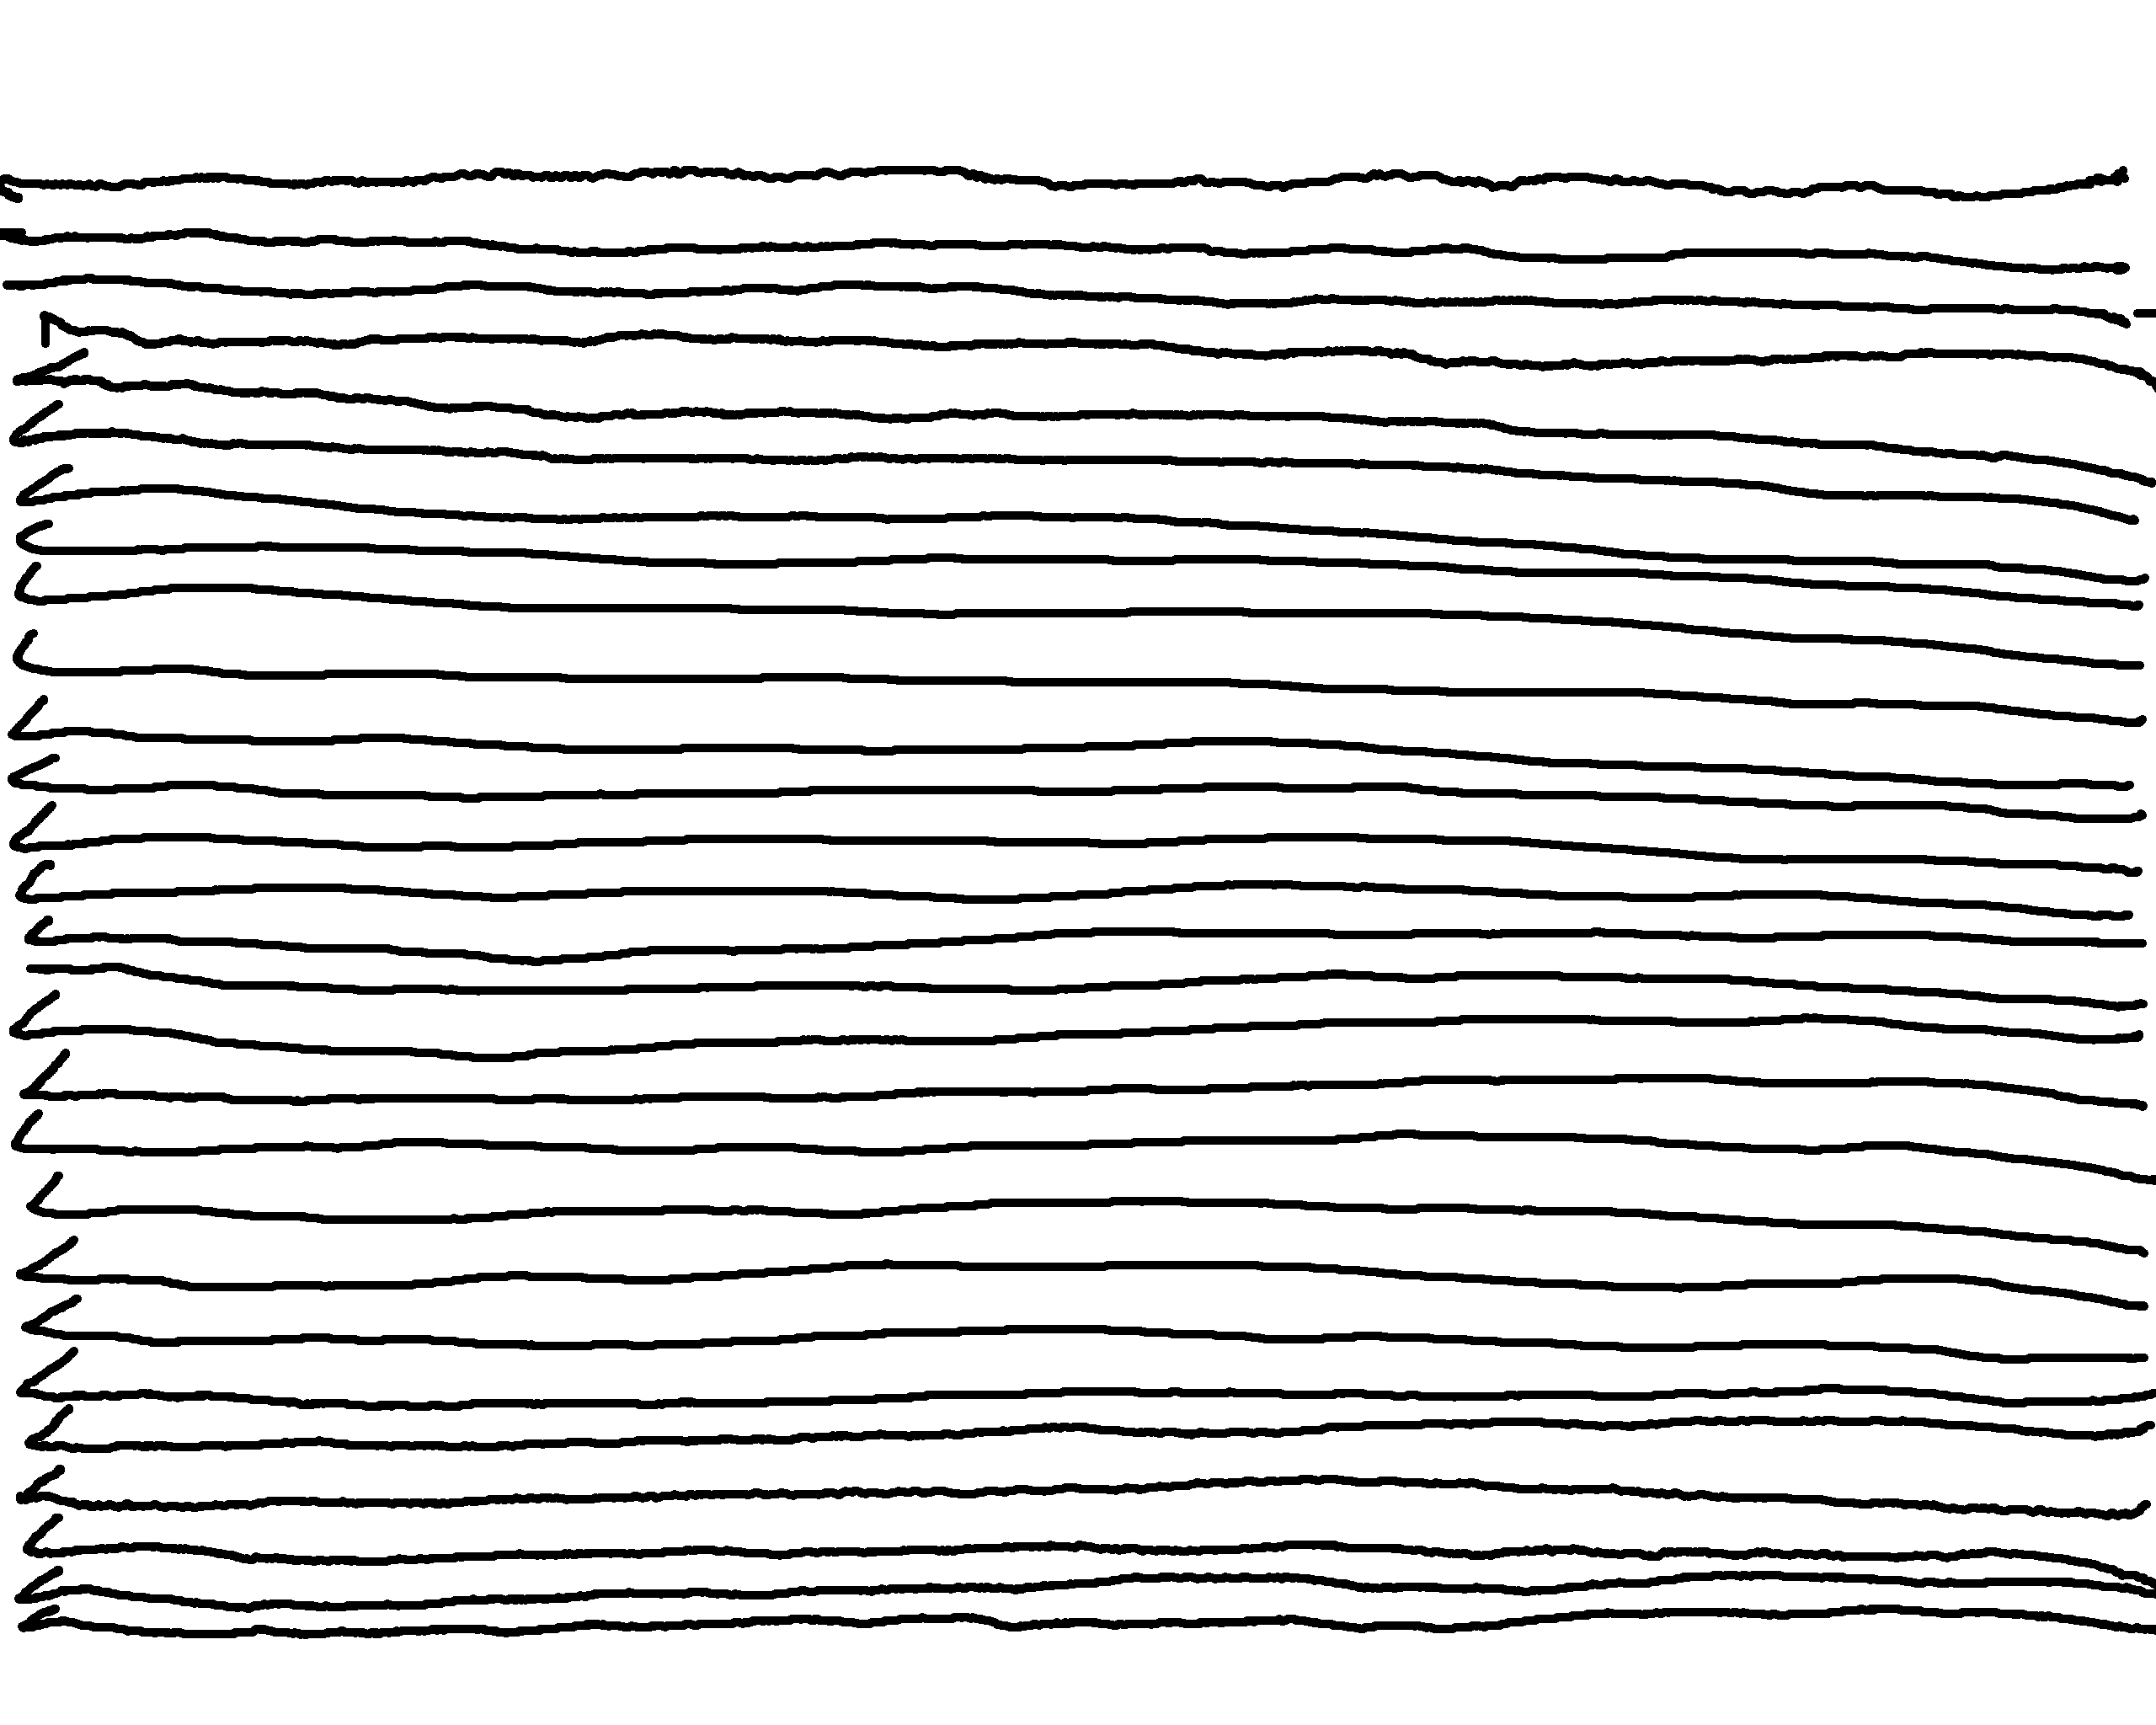 Drawn lines To heard hand front hand